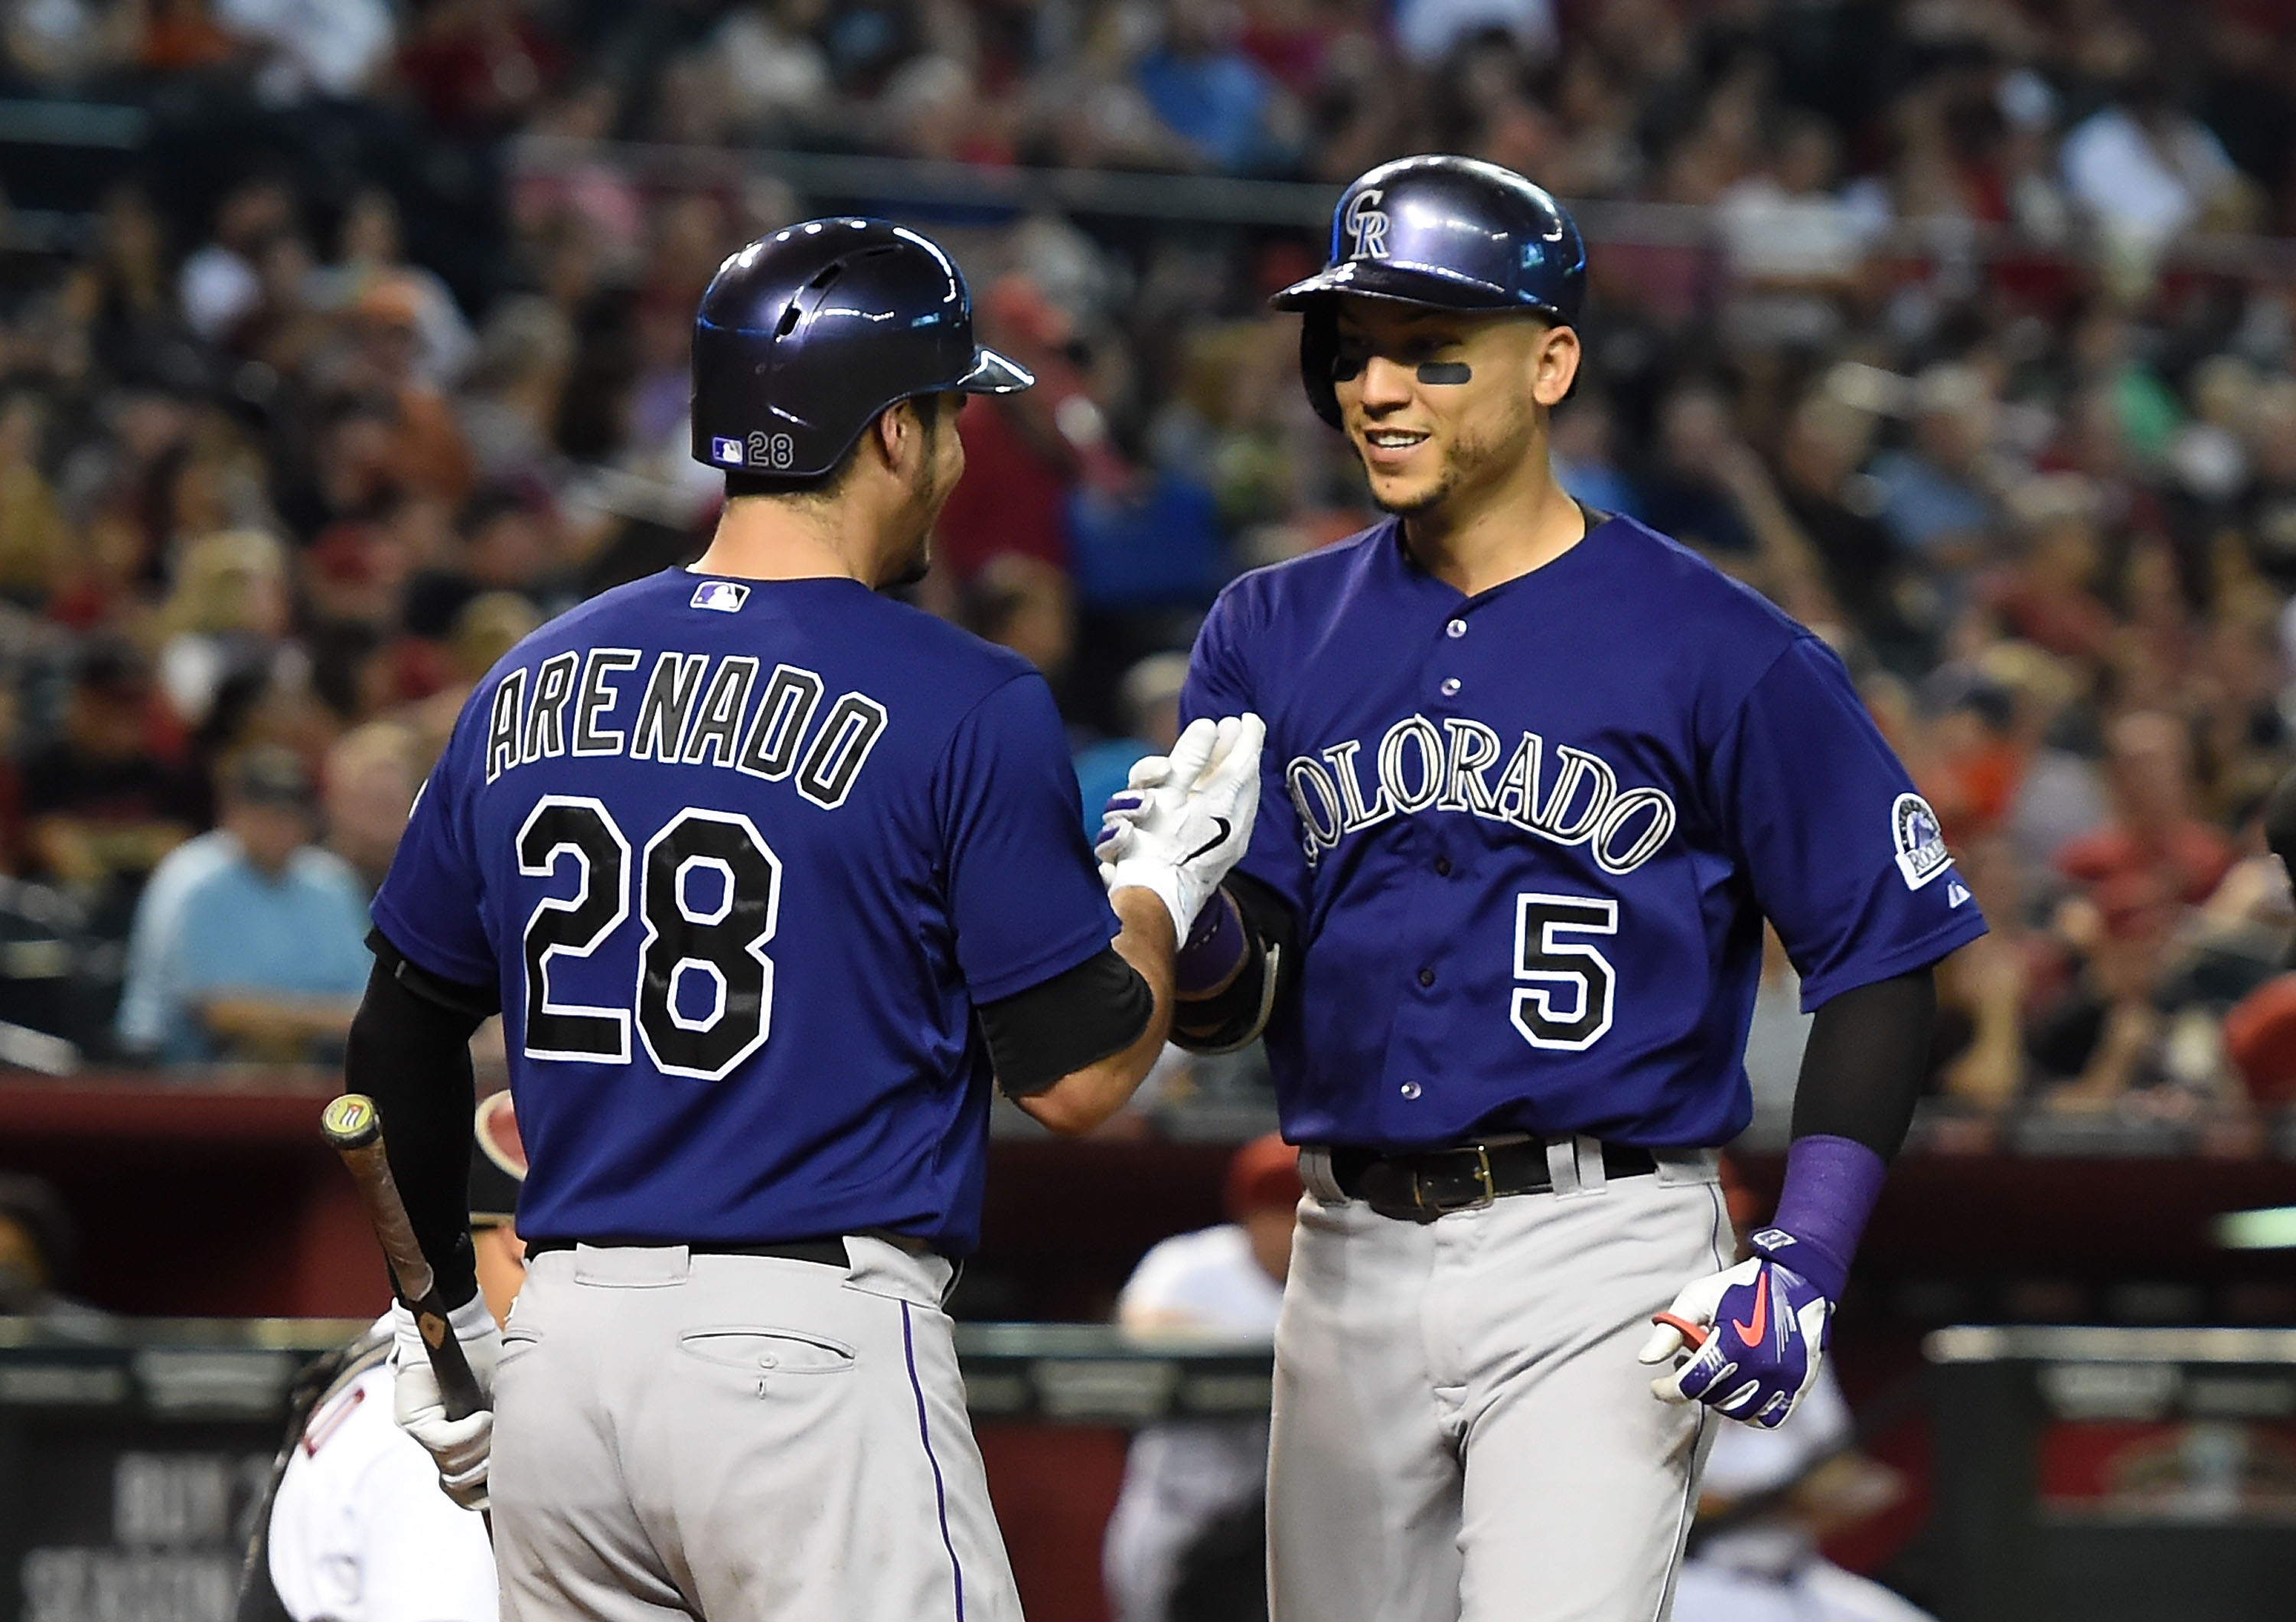 Carlos Gonzalez of the Colorado Rockies celebrates with teammate Nolan Arenado after hitting a third inning home run against the Arizona Diamondbacks at Chase Field on Sept. 29, 2015. (Photo by Norm Hall/Getty Images)